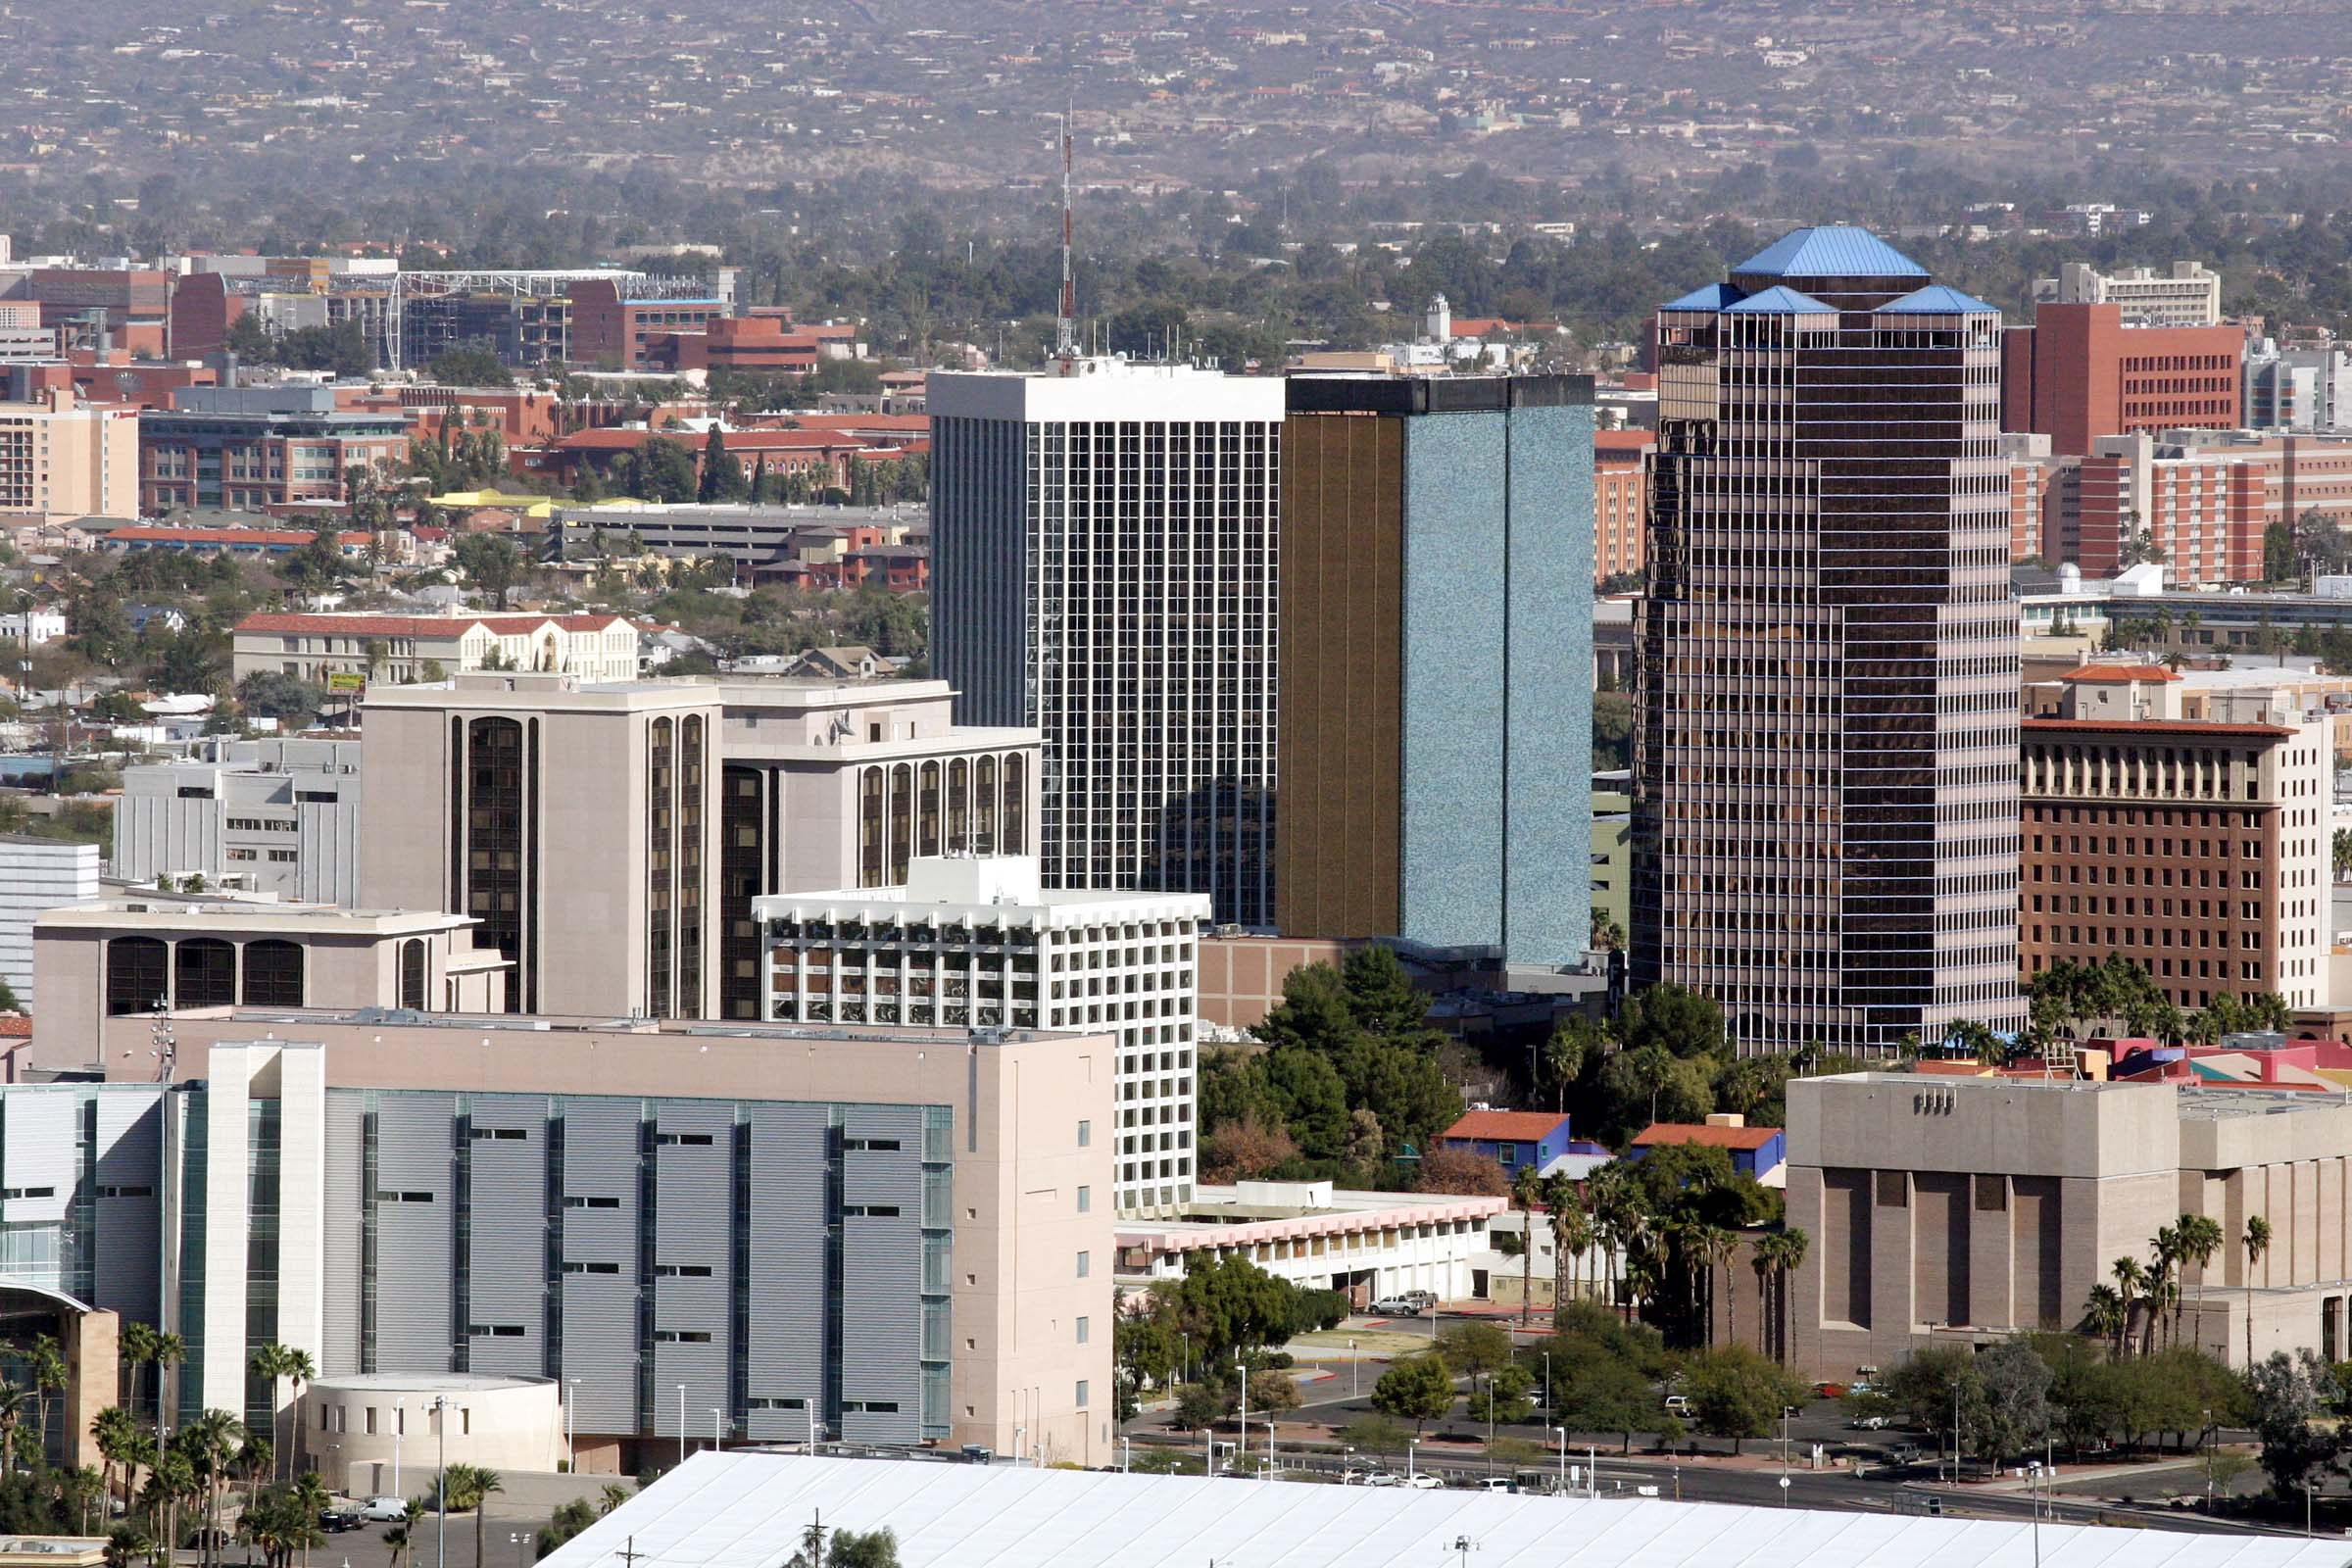 How will the general plan change Tucson over the next ten or more years?